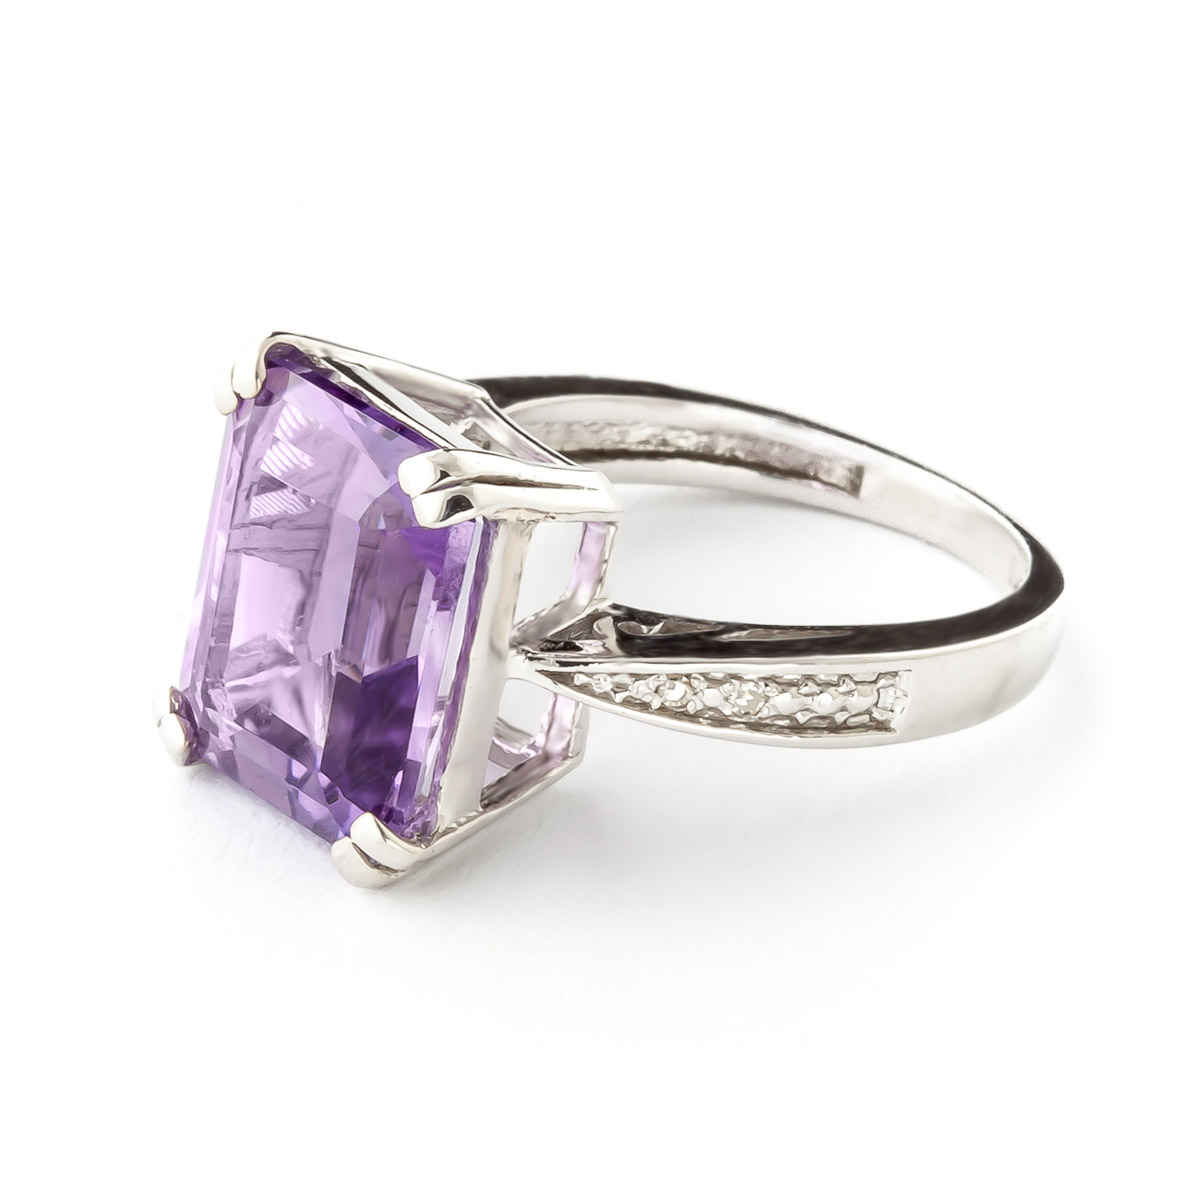 Amethyst and Diamond Ring 5.6ct in 9ct White Gold